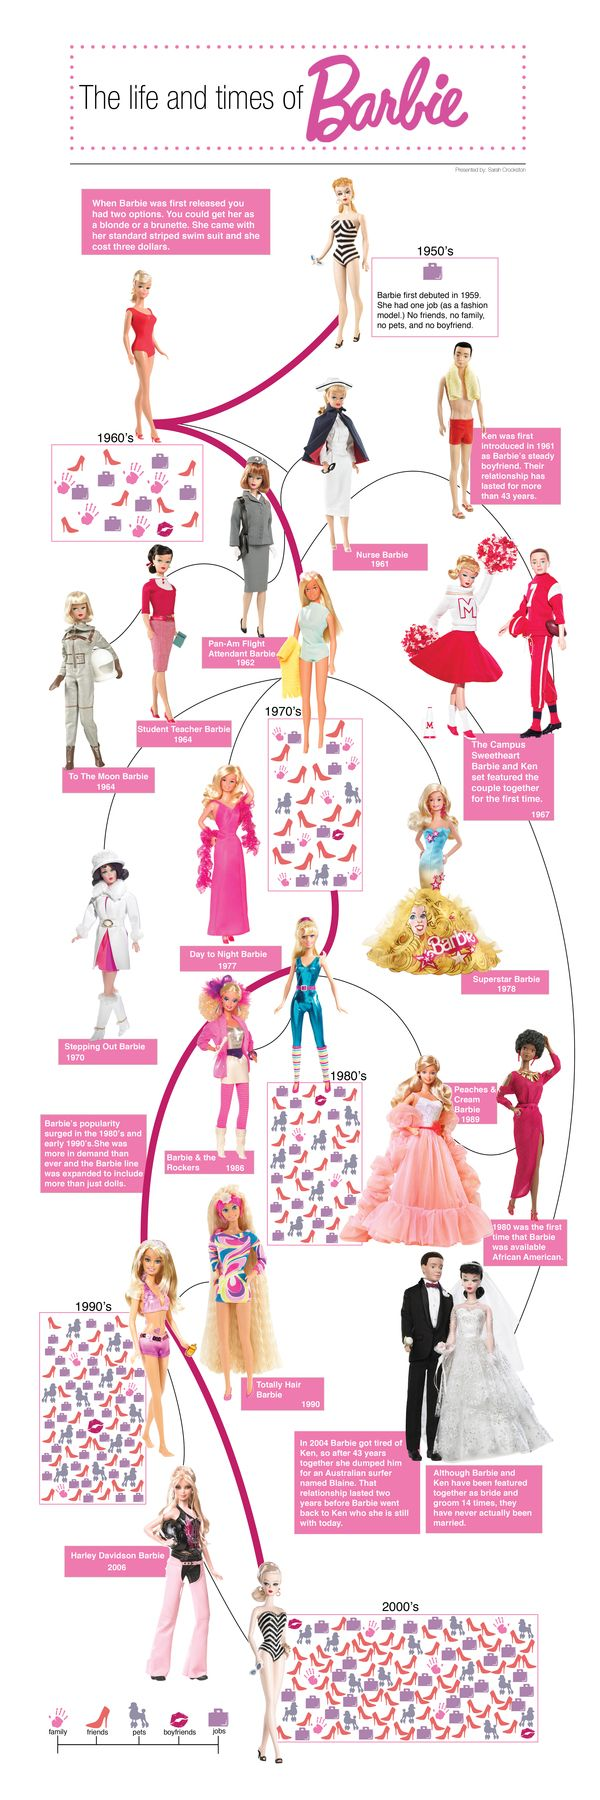 This is a cool way to do a timeline infographic. I like how they incorporated the pictures of the Barbies as well.